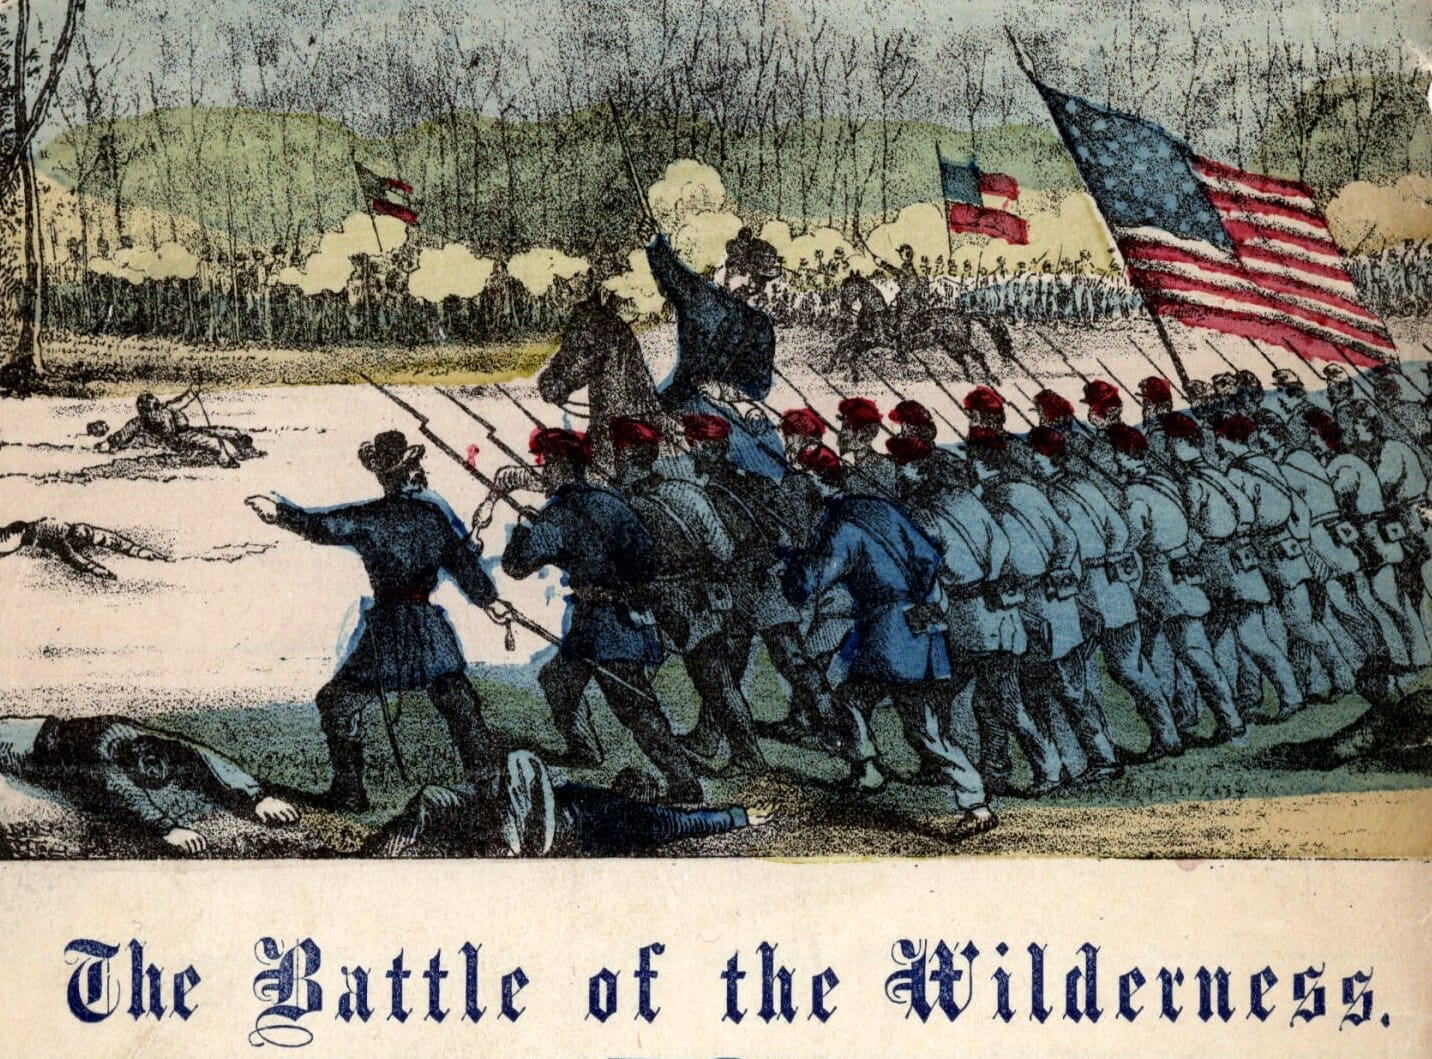 Music - The battle of the Wilderness